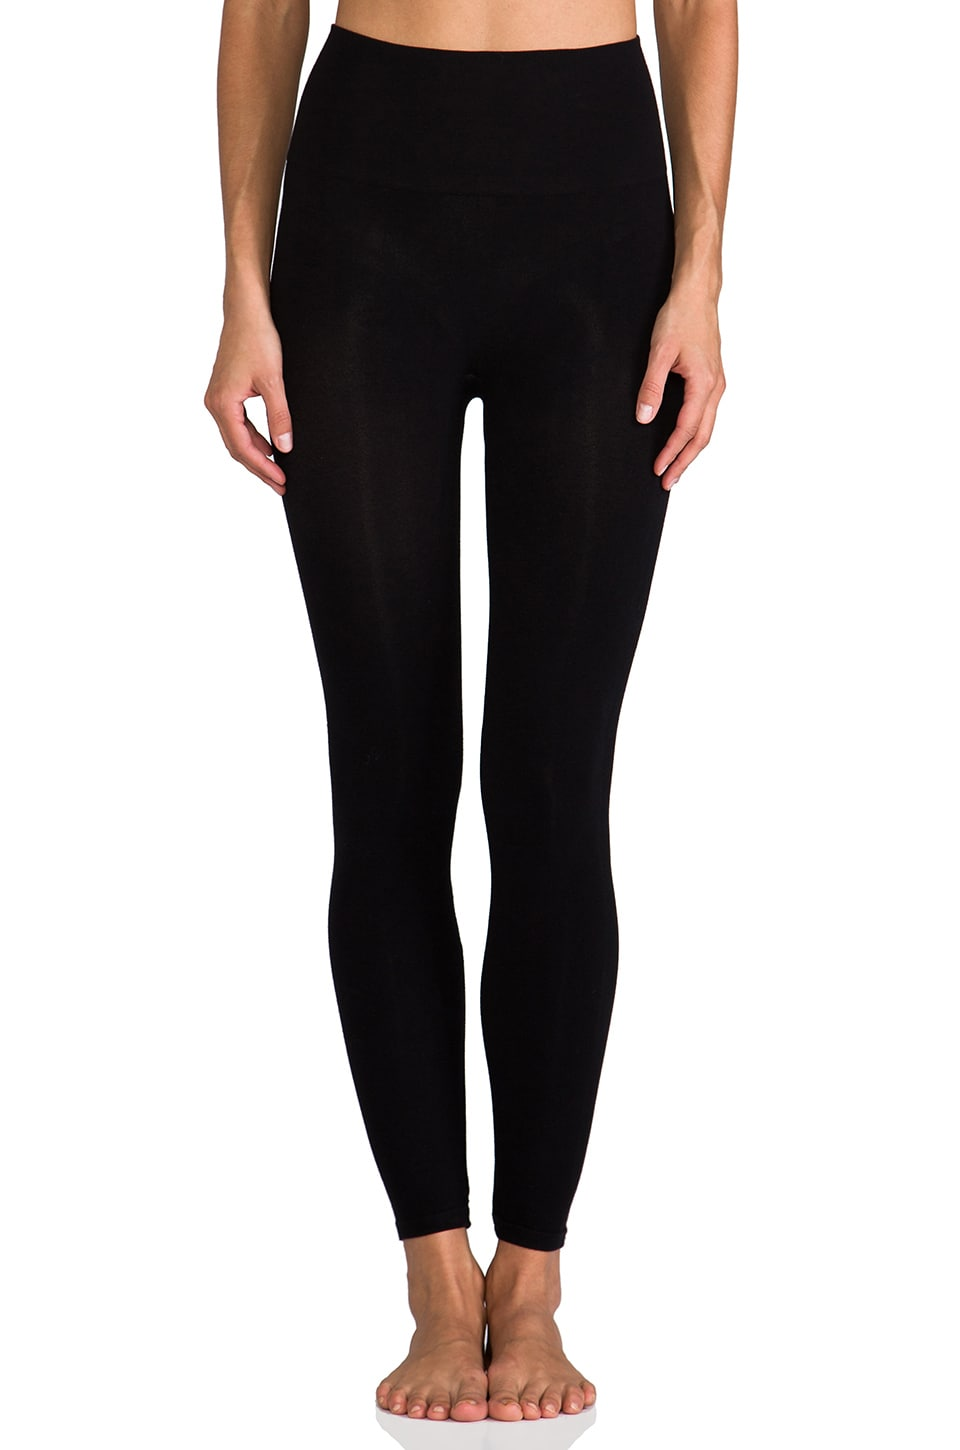 SPANX Look-at-Me Cotton Legging in Black